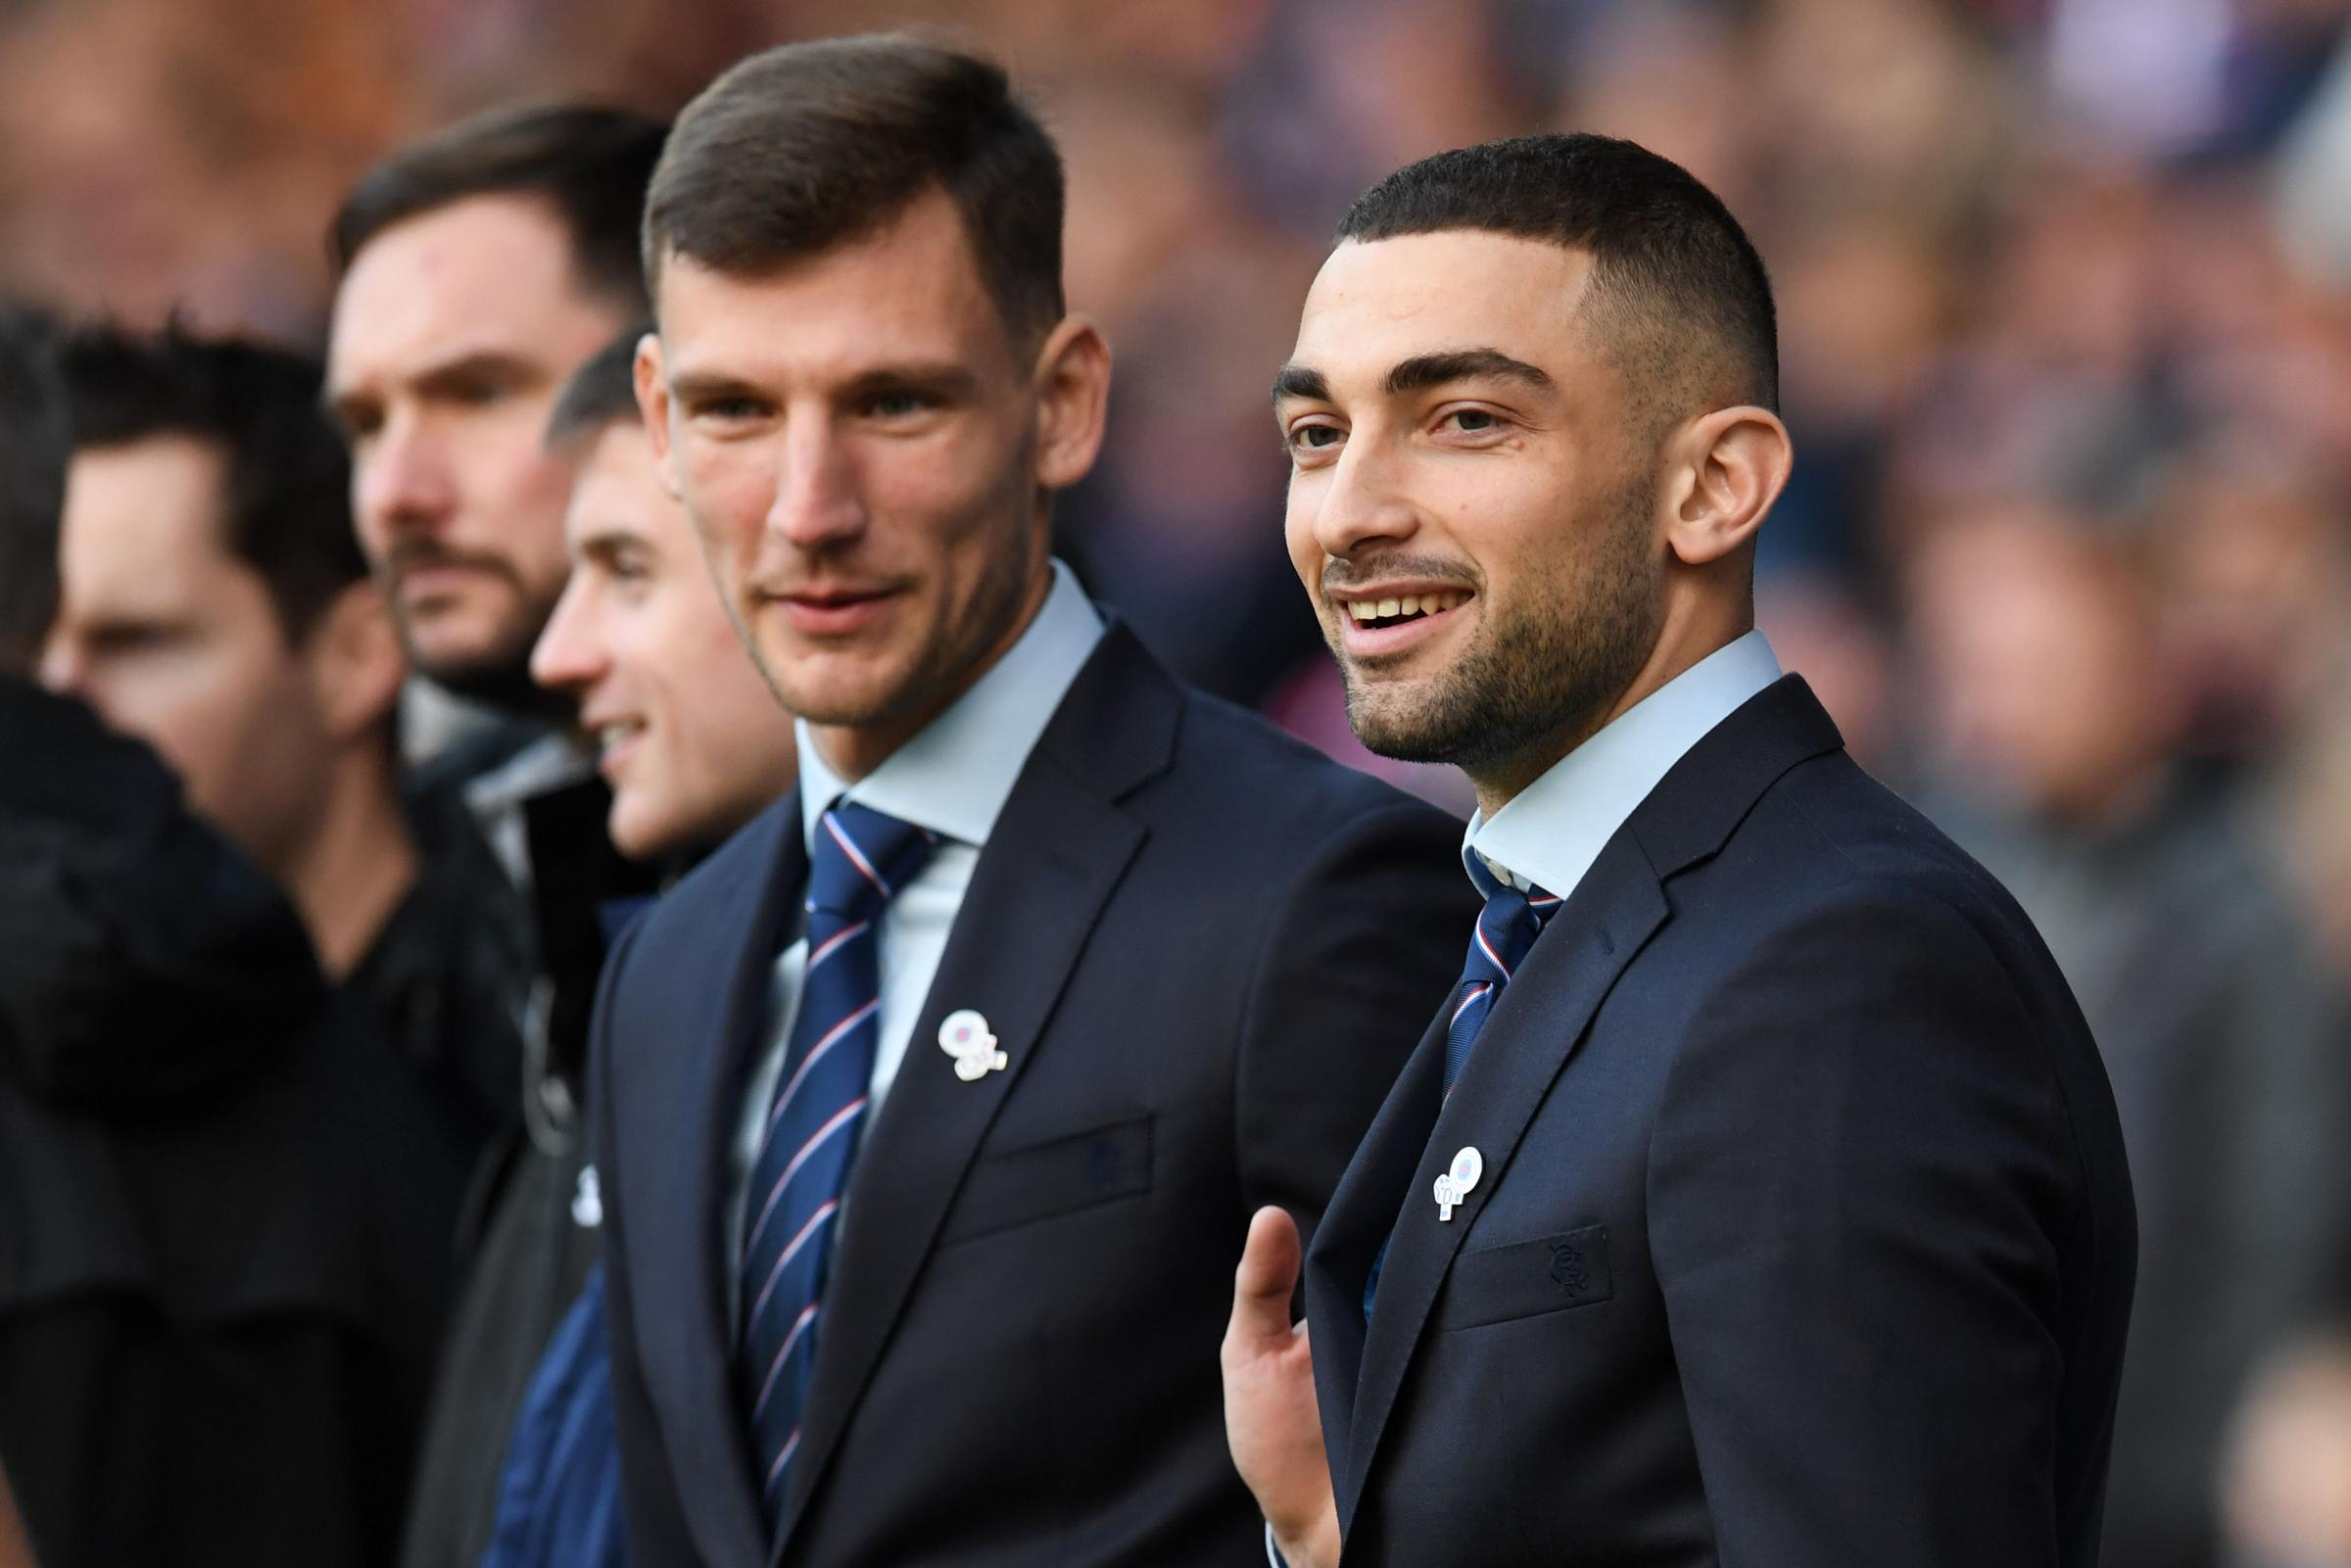 Steven Gerrard challenges Borna Barisic and Eros Grezda to make their mark at Rangers in the second half of the season